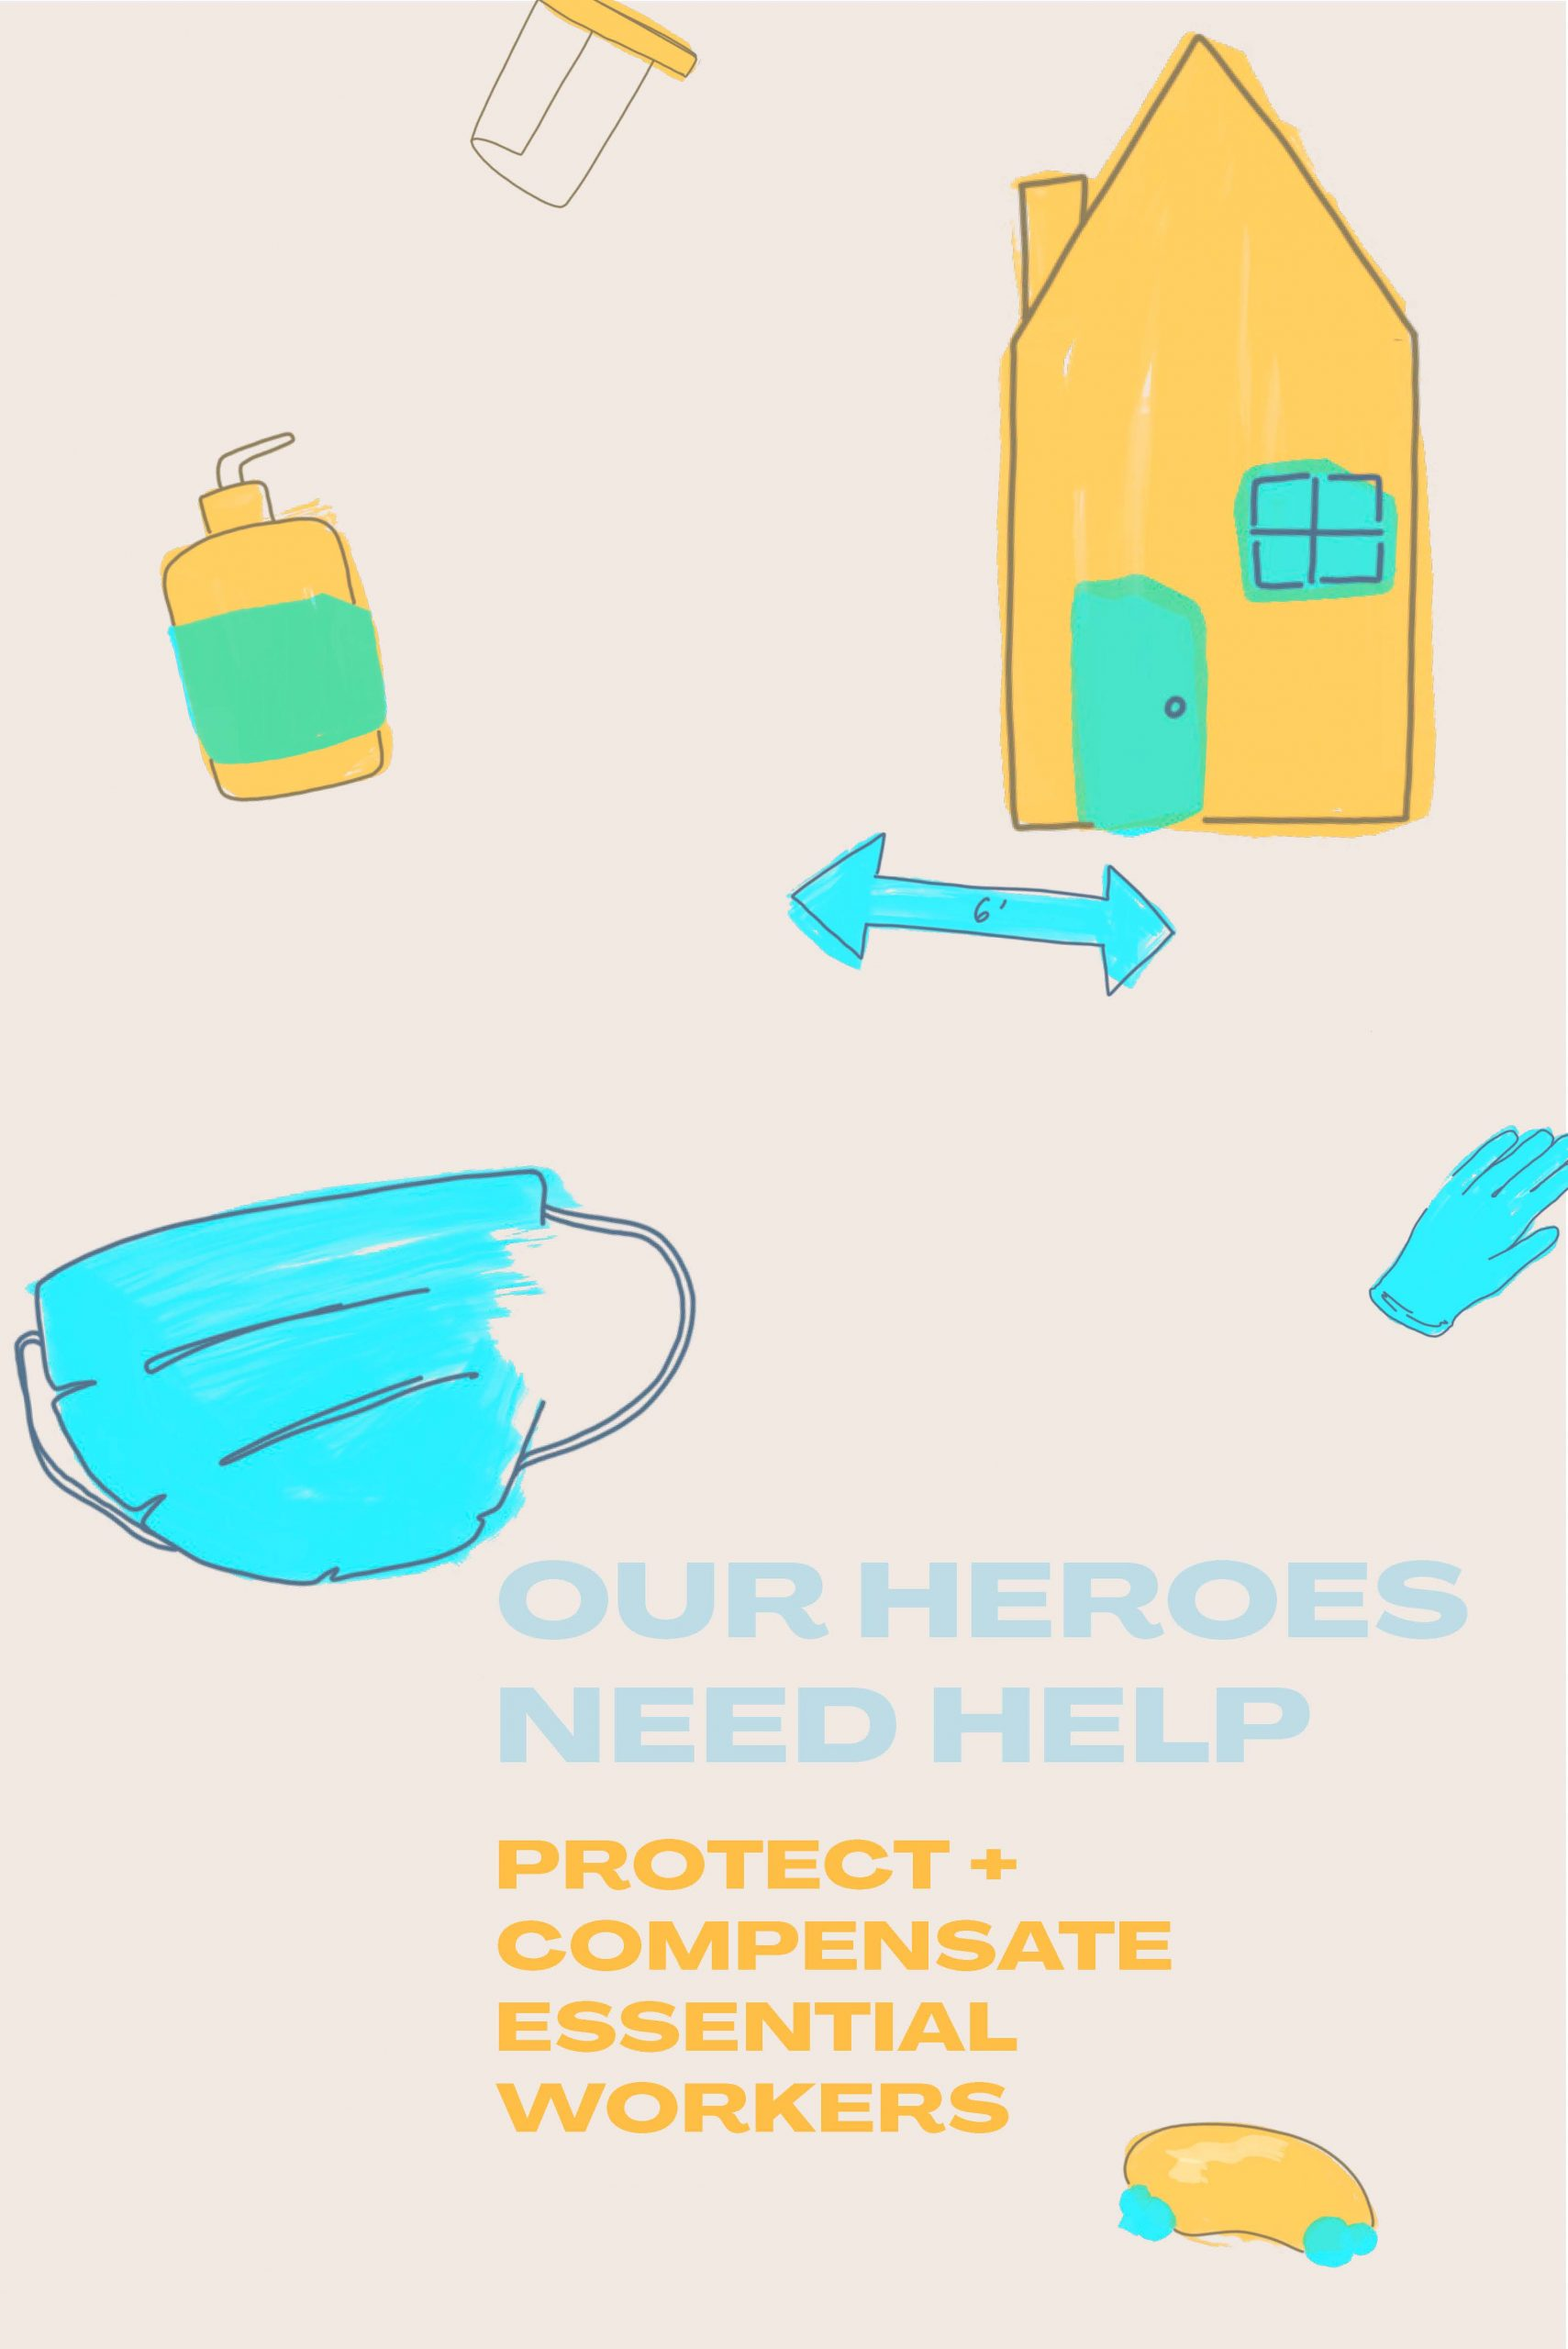 Our Heroes Need Help